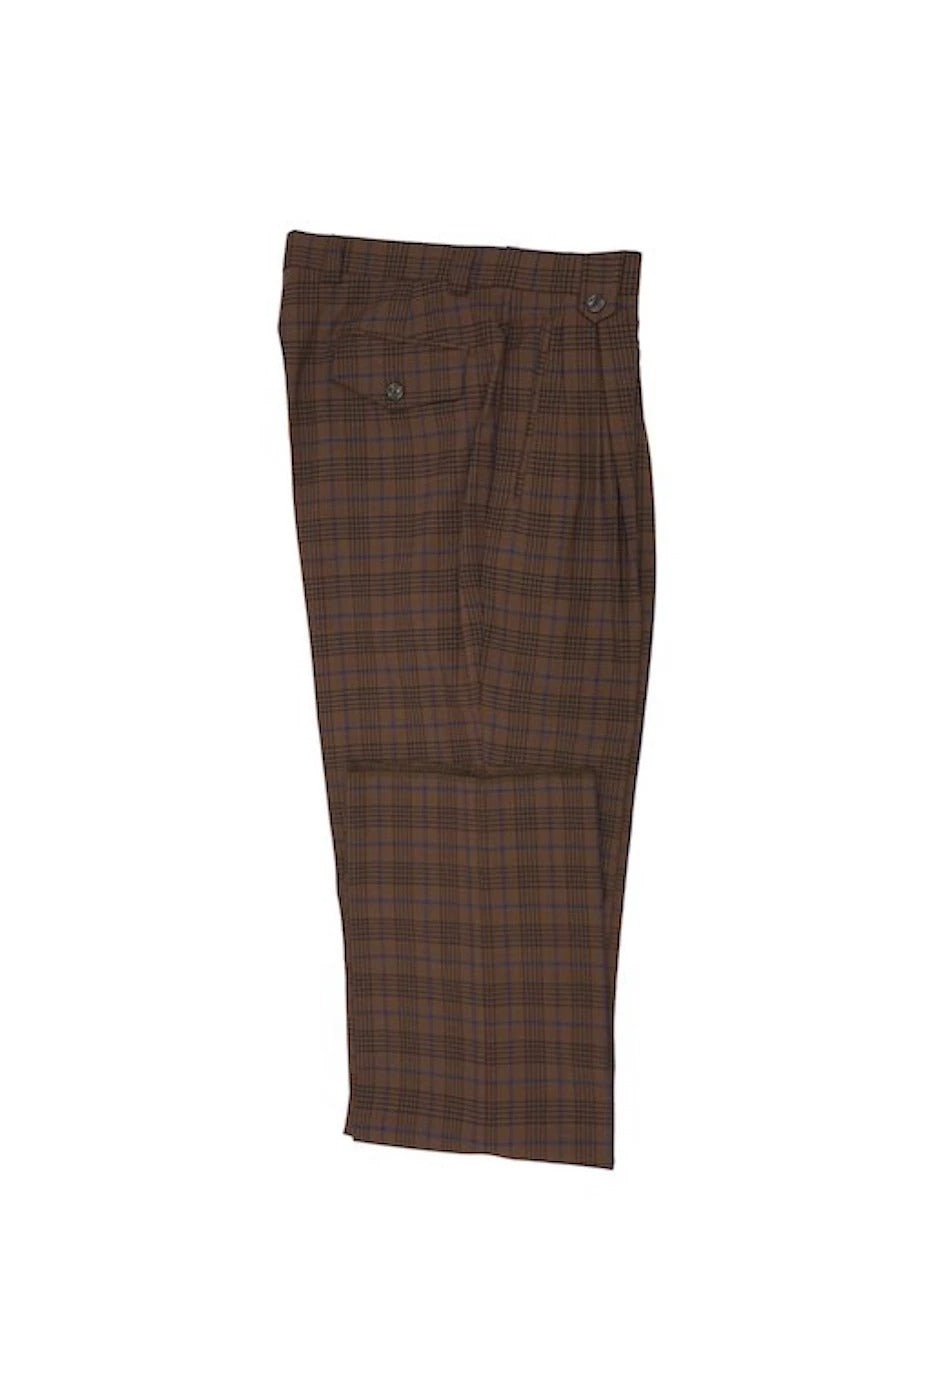 Tiglio Luxe 2576 Brick Brown with Blue Windowpane Wide Leg TLS20048/3